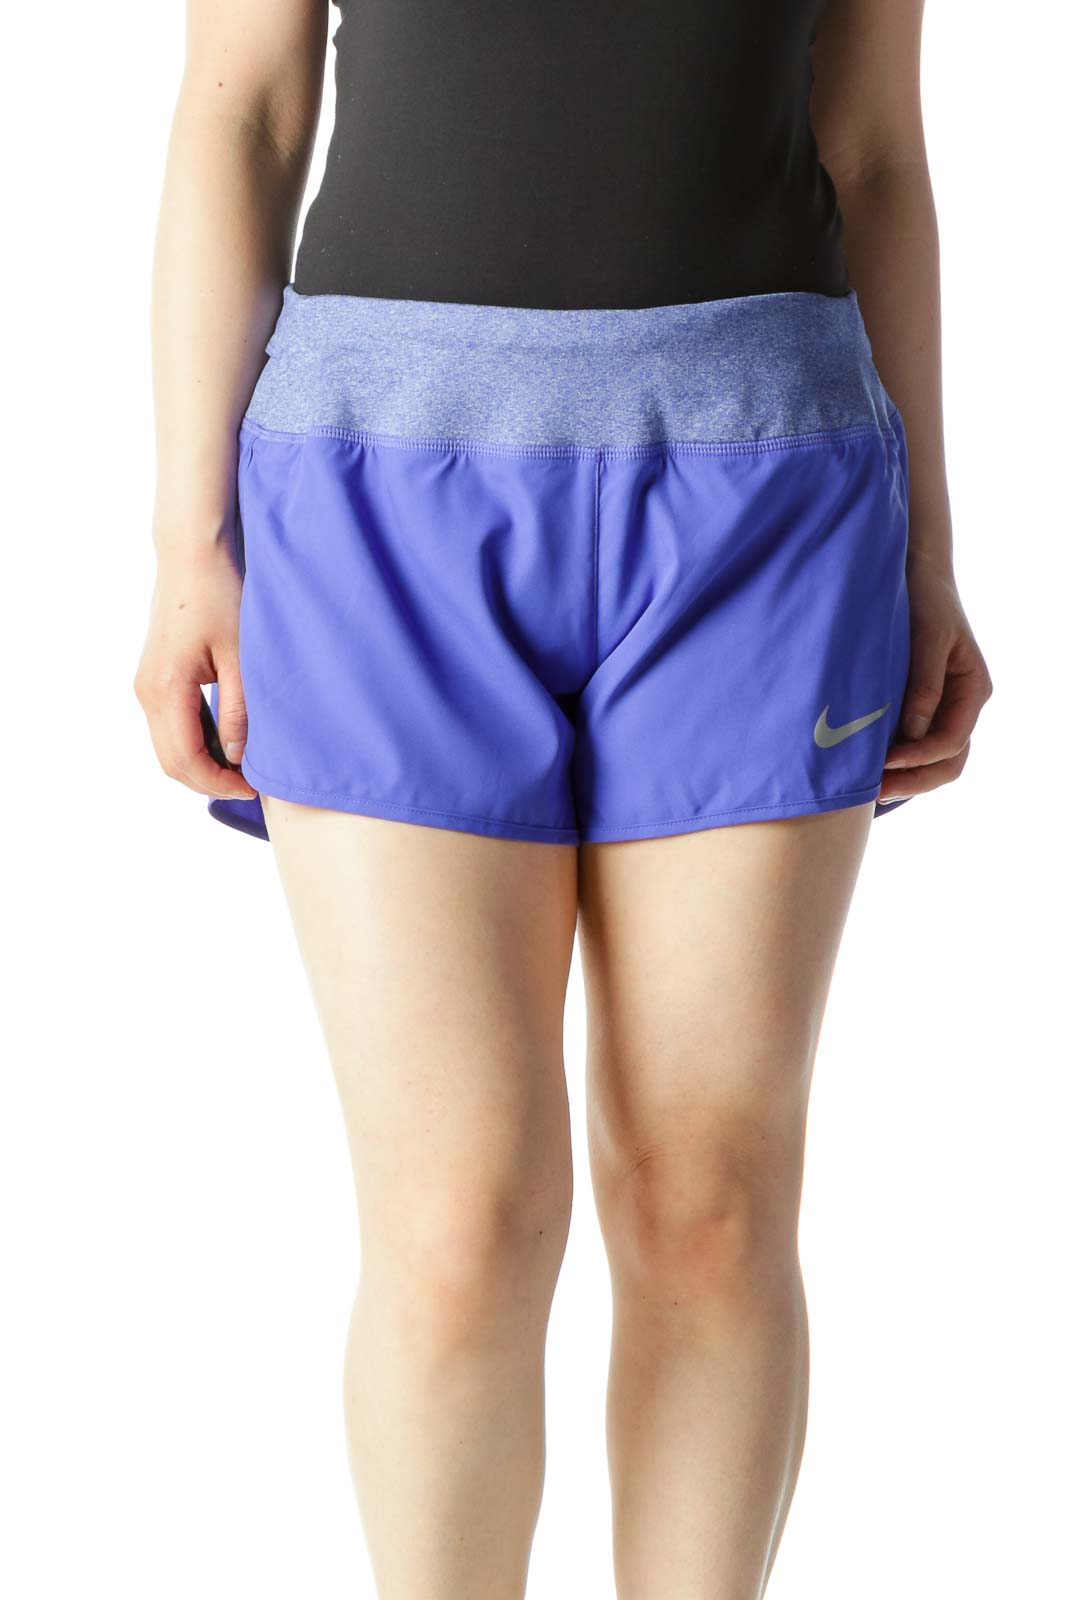 Purple Pocketed Running Shorts with Heather Waist-Band